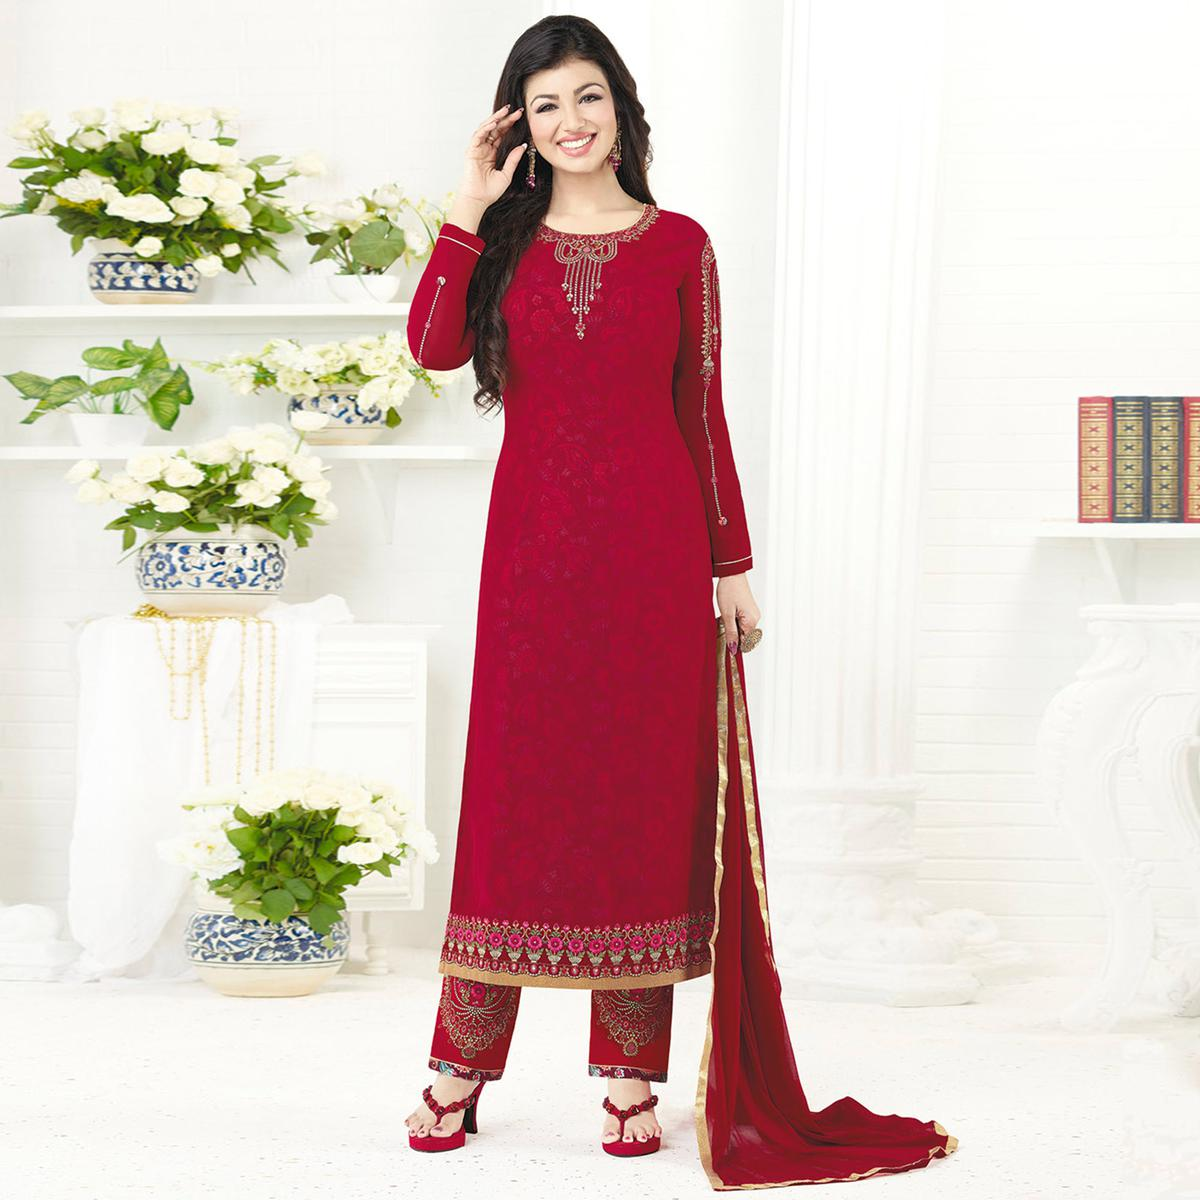 Jazzy Pinkish Red Colored Embroidered Party Wear Georgette Salwar Suit